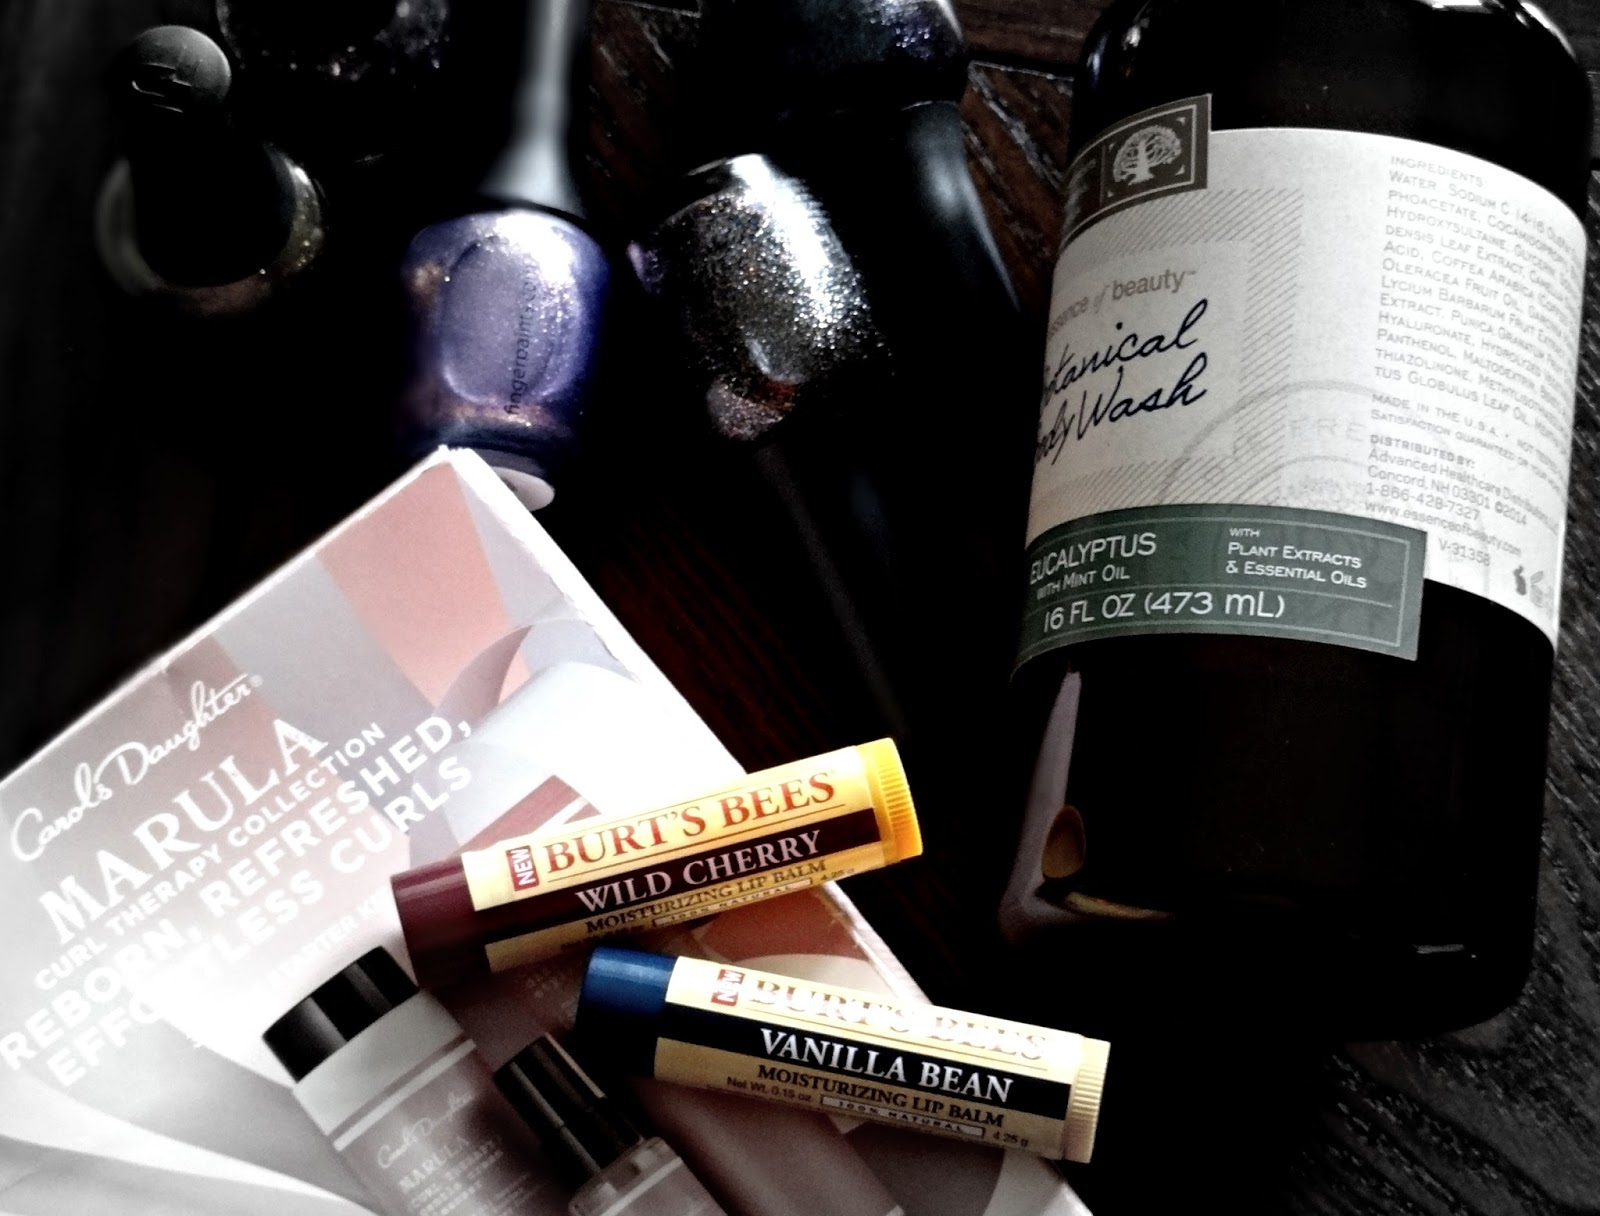 budget beauty buys from burt's bees finger paints essence of beauty carol's daughter